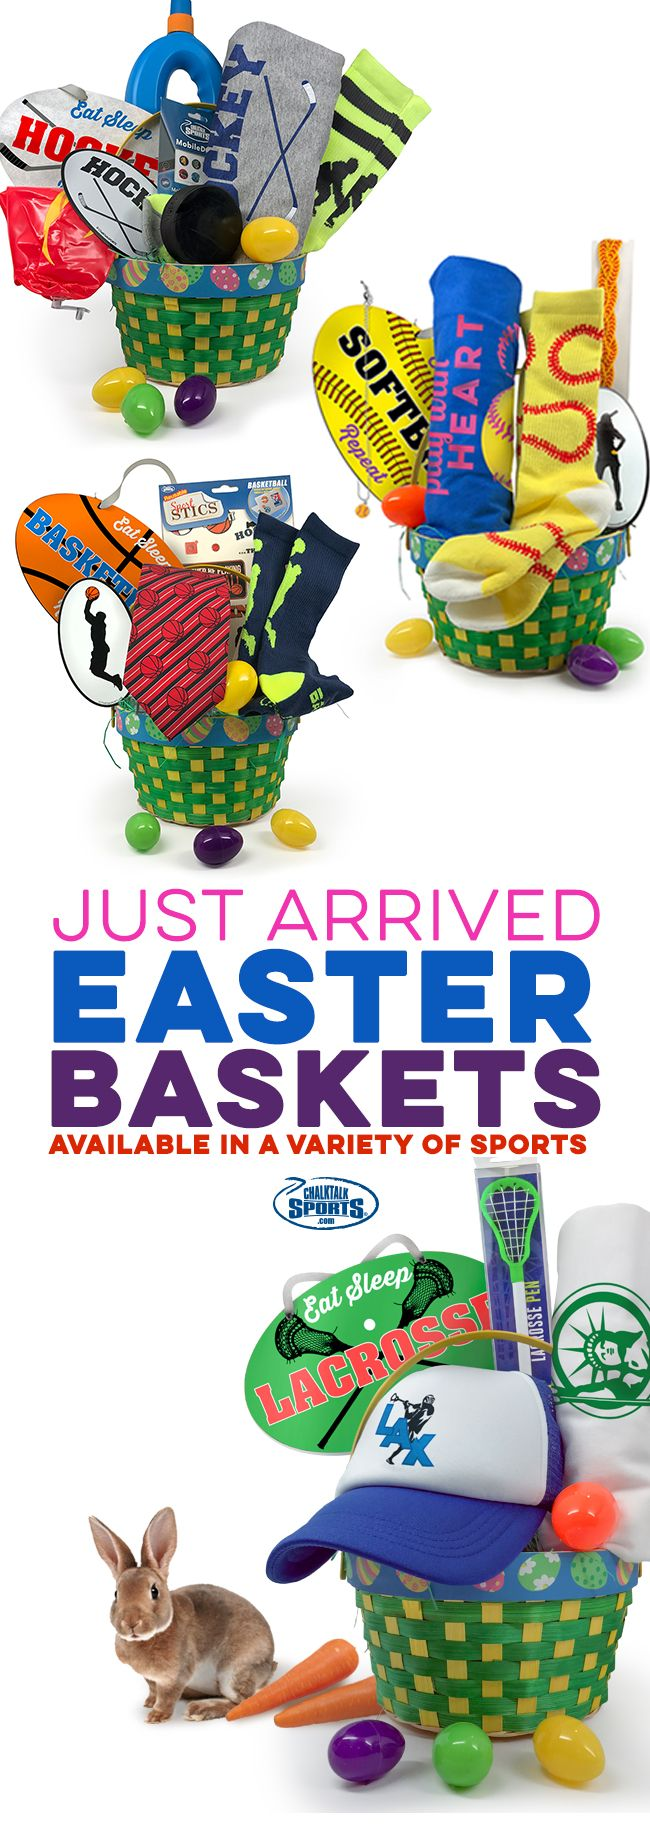 Easter baskets for your sport find ready to ship easter baskets easter baskets for your sport find ready to ship easter baskets pre filled with awesome goodies and gifts in your favorite sports easter basket prices are negle